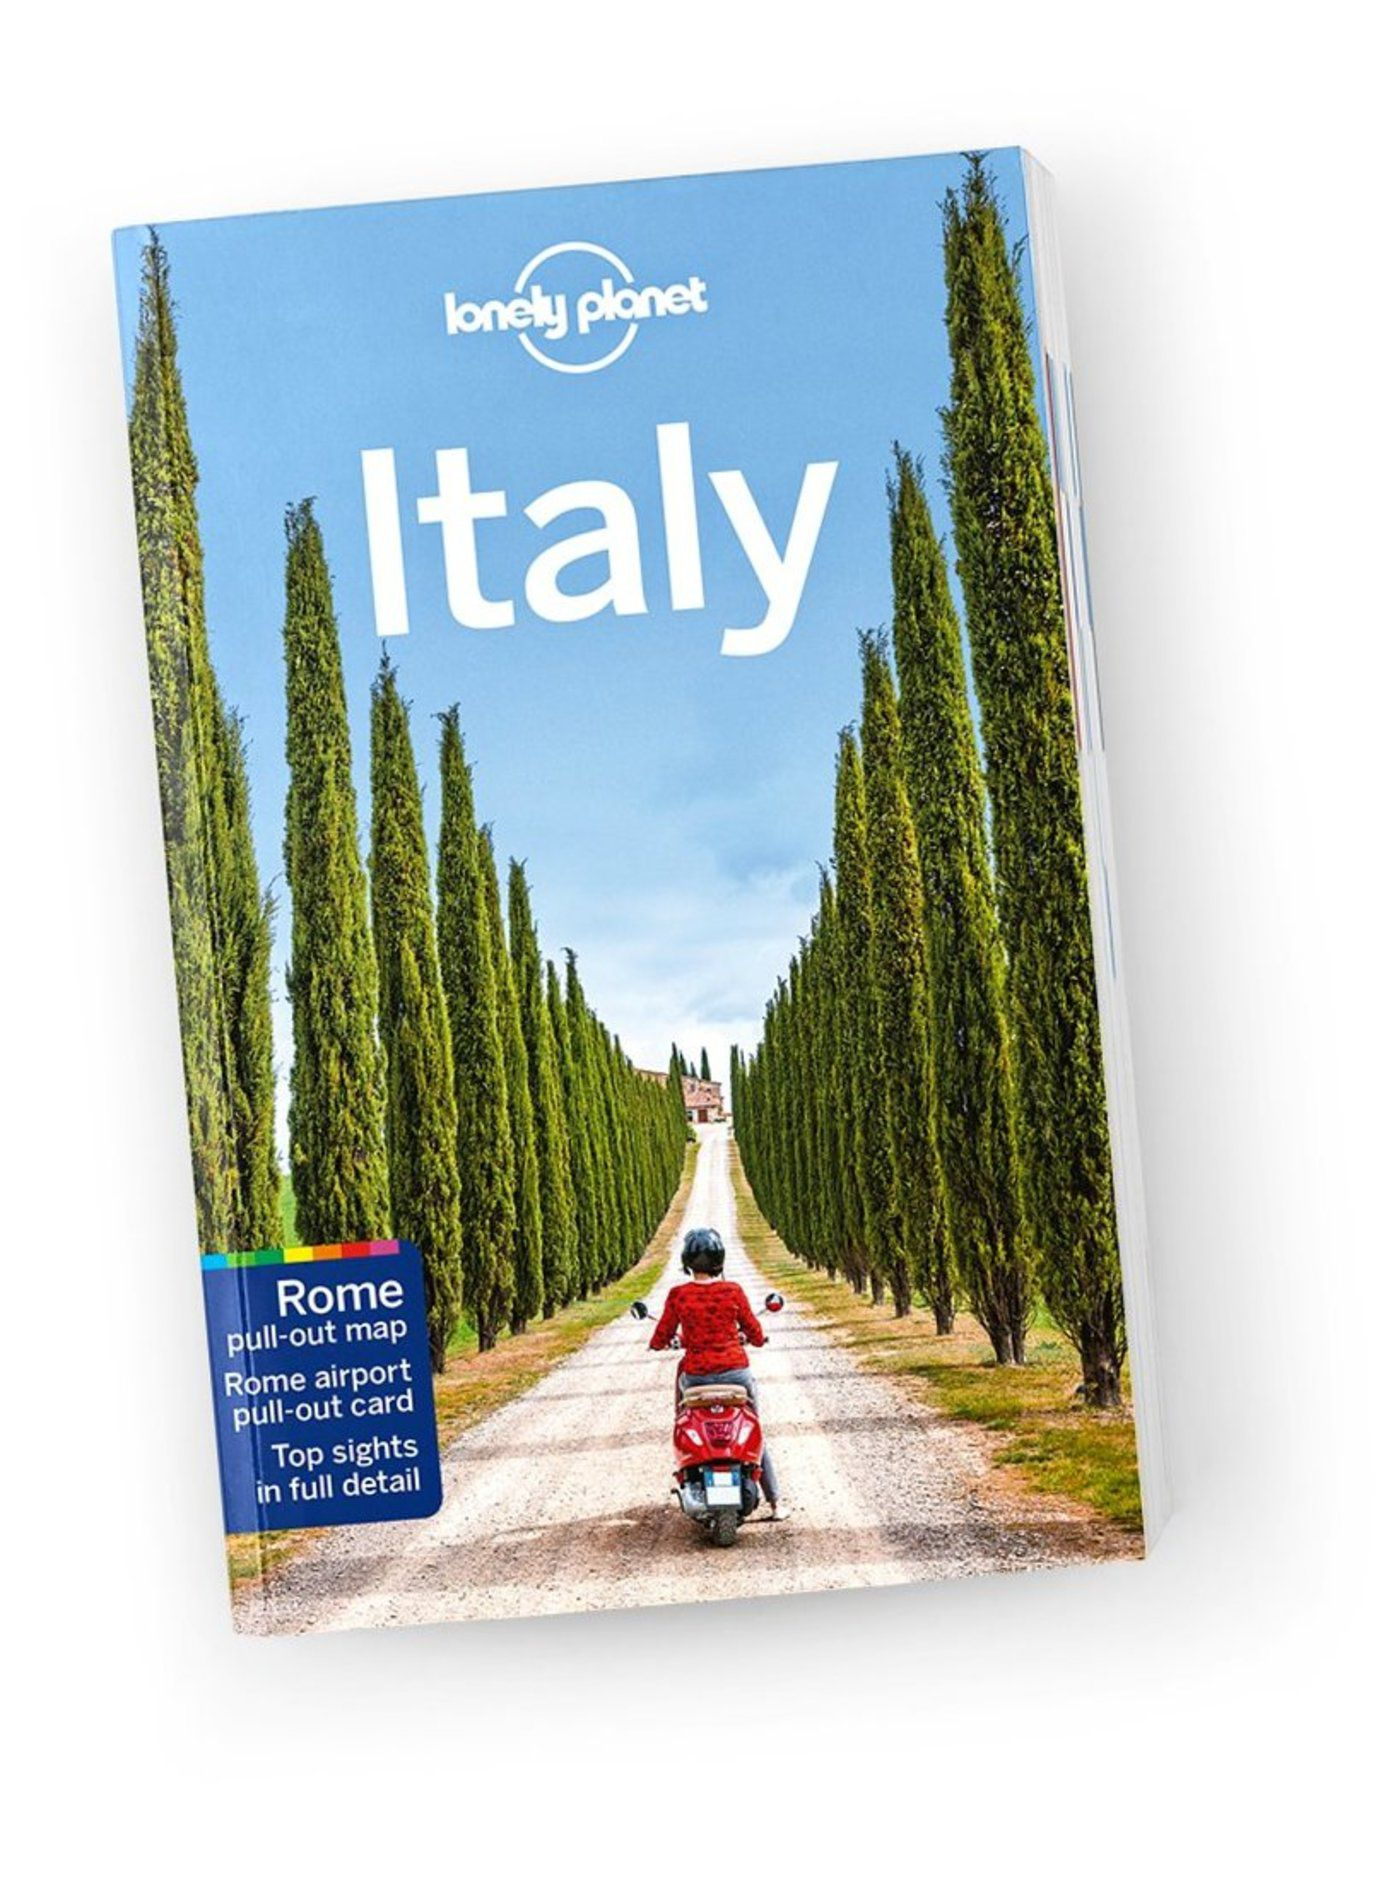 Italy travel guide - 14th edition